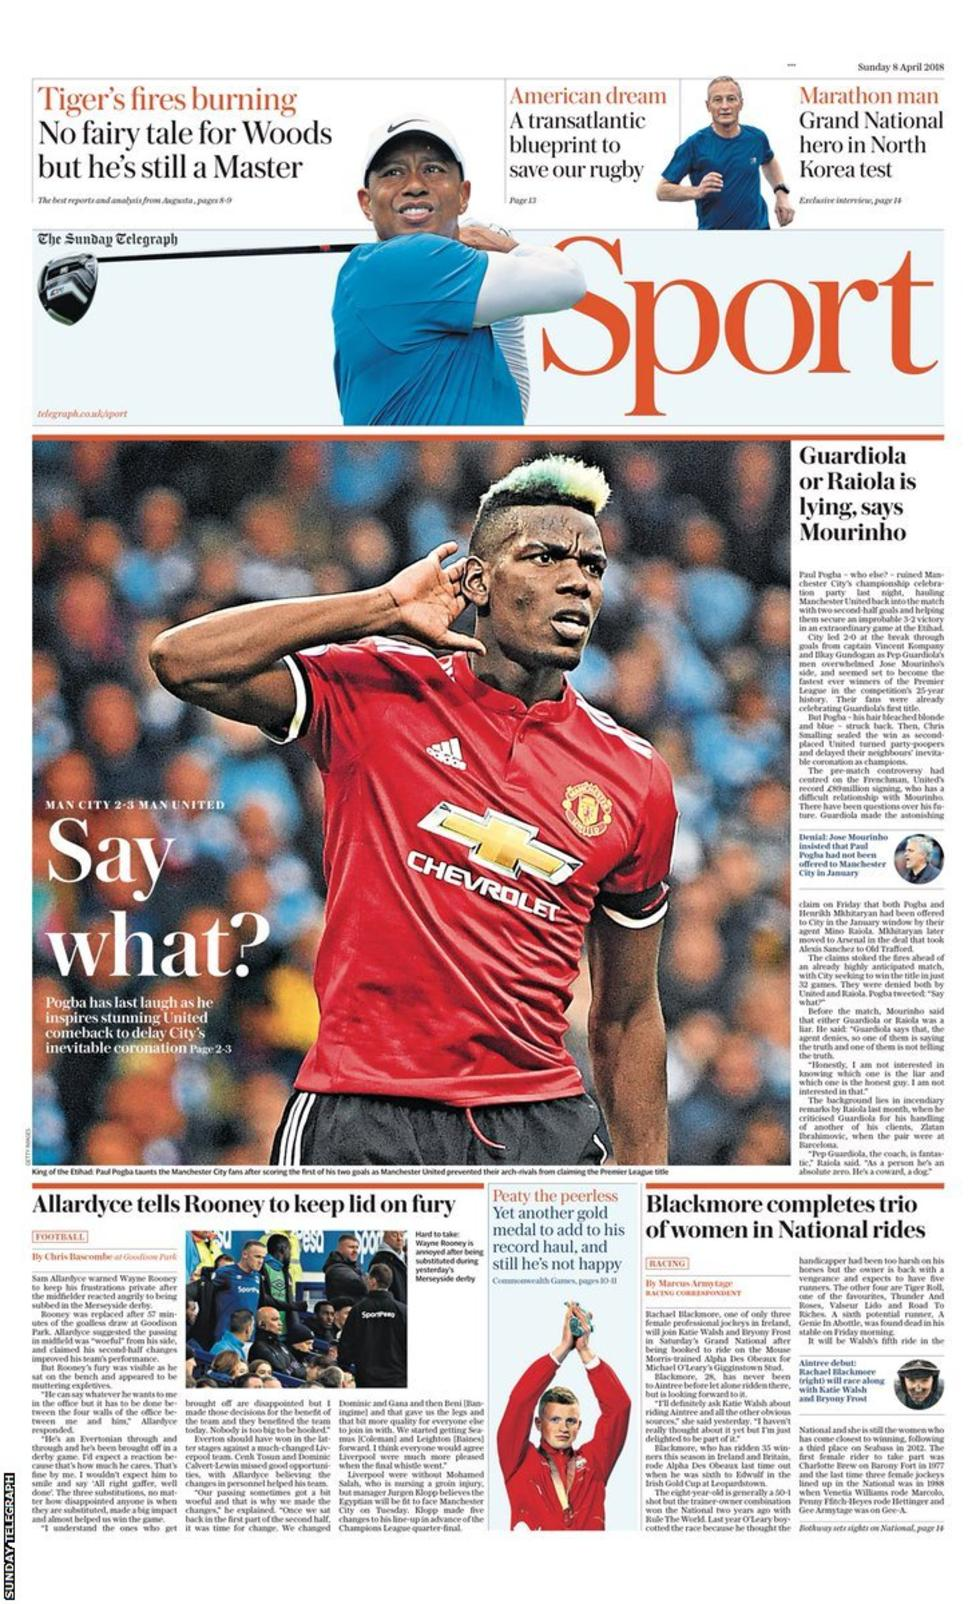 _100750086_sunday_telegraph.jpg